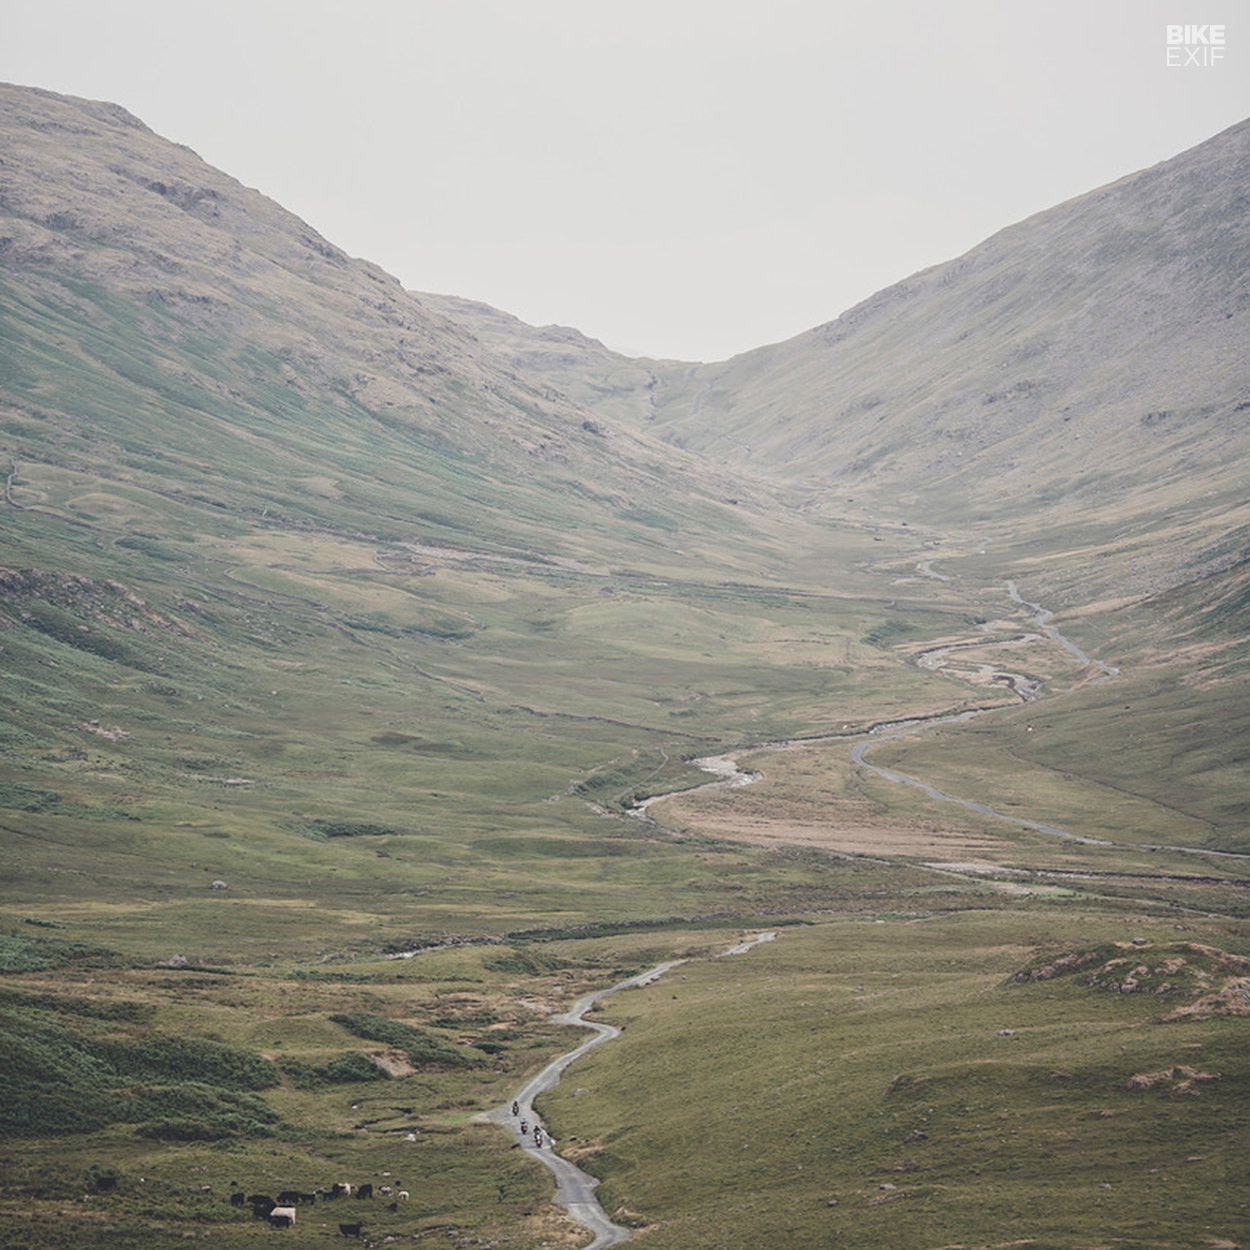 Hardknott Pass in the Lake District, part of the 2019 Great Malle Rally route